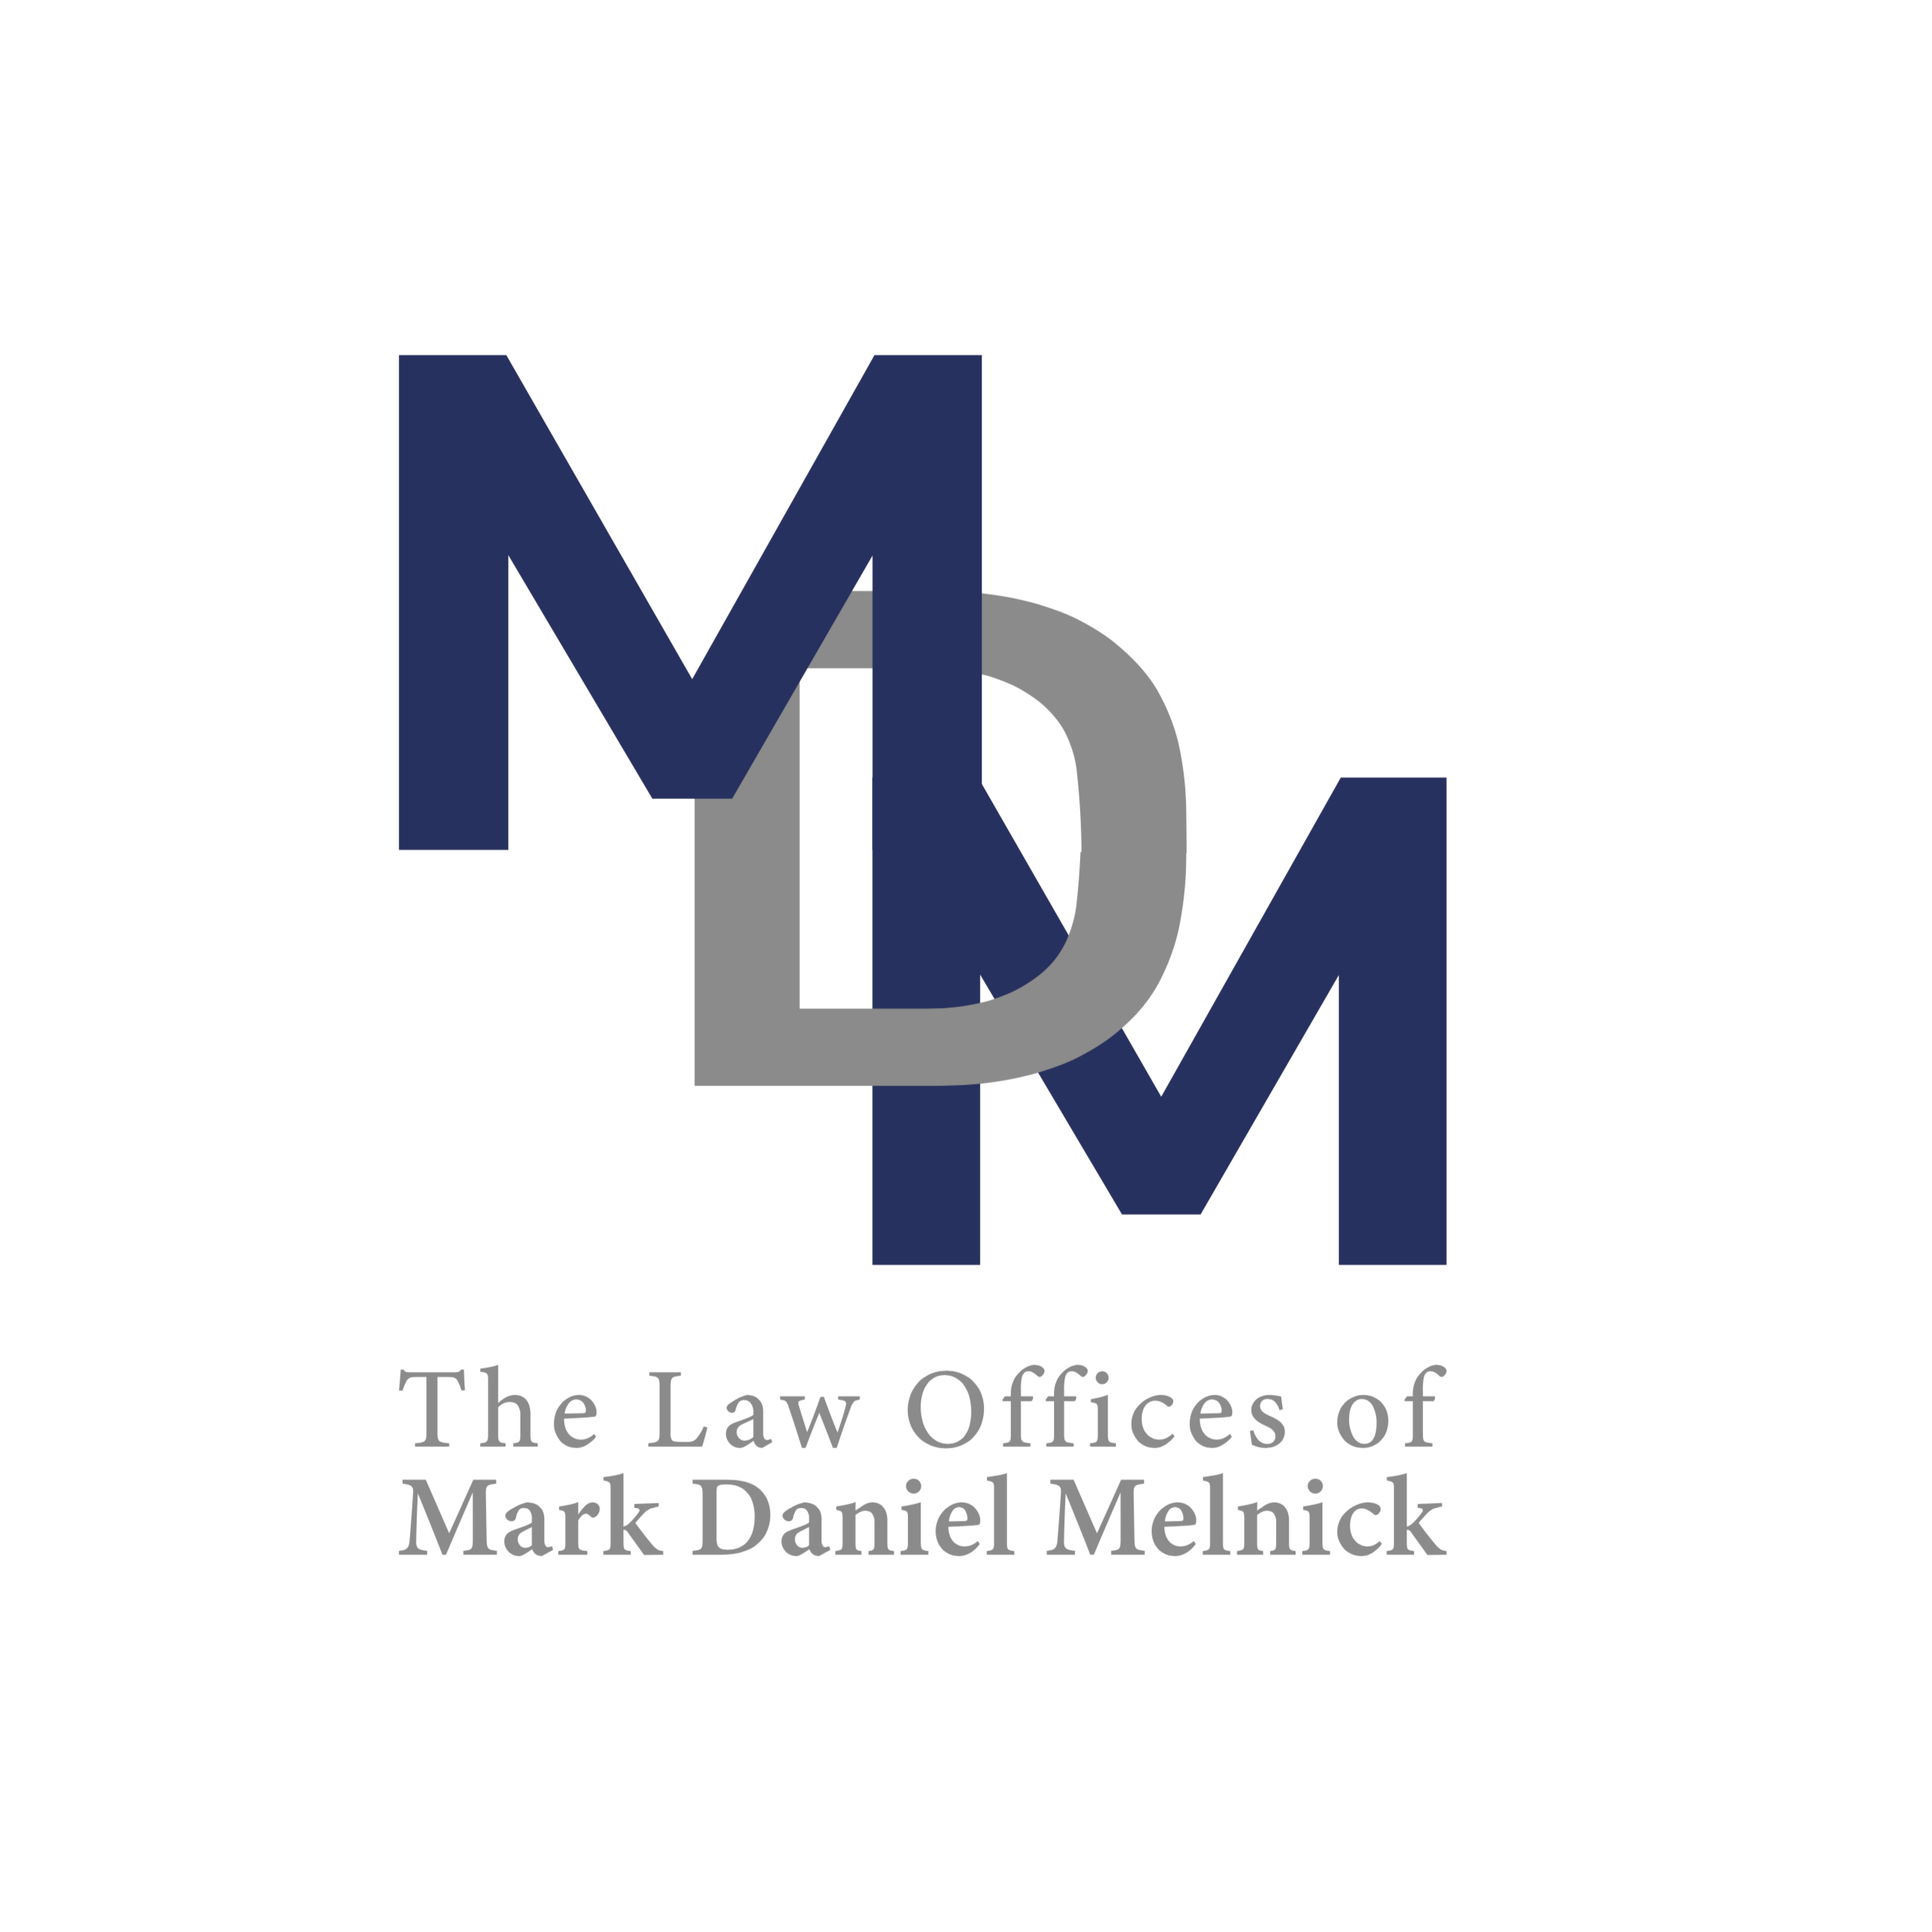 The Law Offices of Mark Daniel Melnick